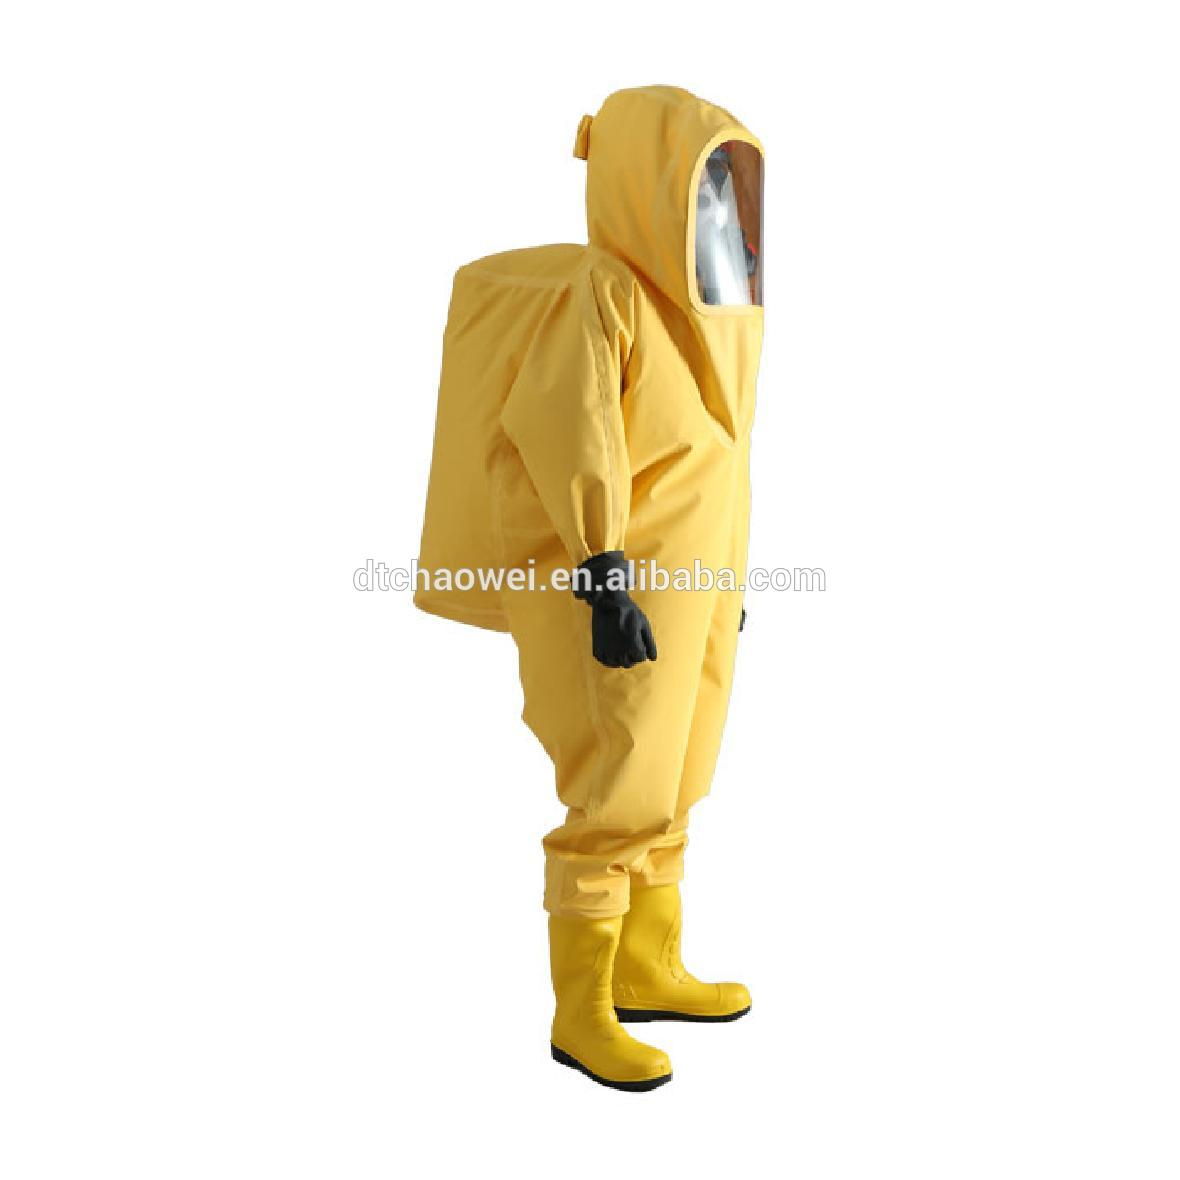 Gas Tight Chemical Hazmat Suit Buy Hazmat Suit Chemical Hazmat Suit Gas Tight Hazmat Suit Product On Alibaba Com